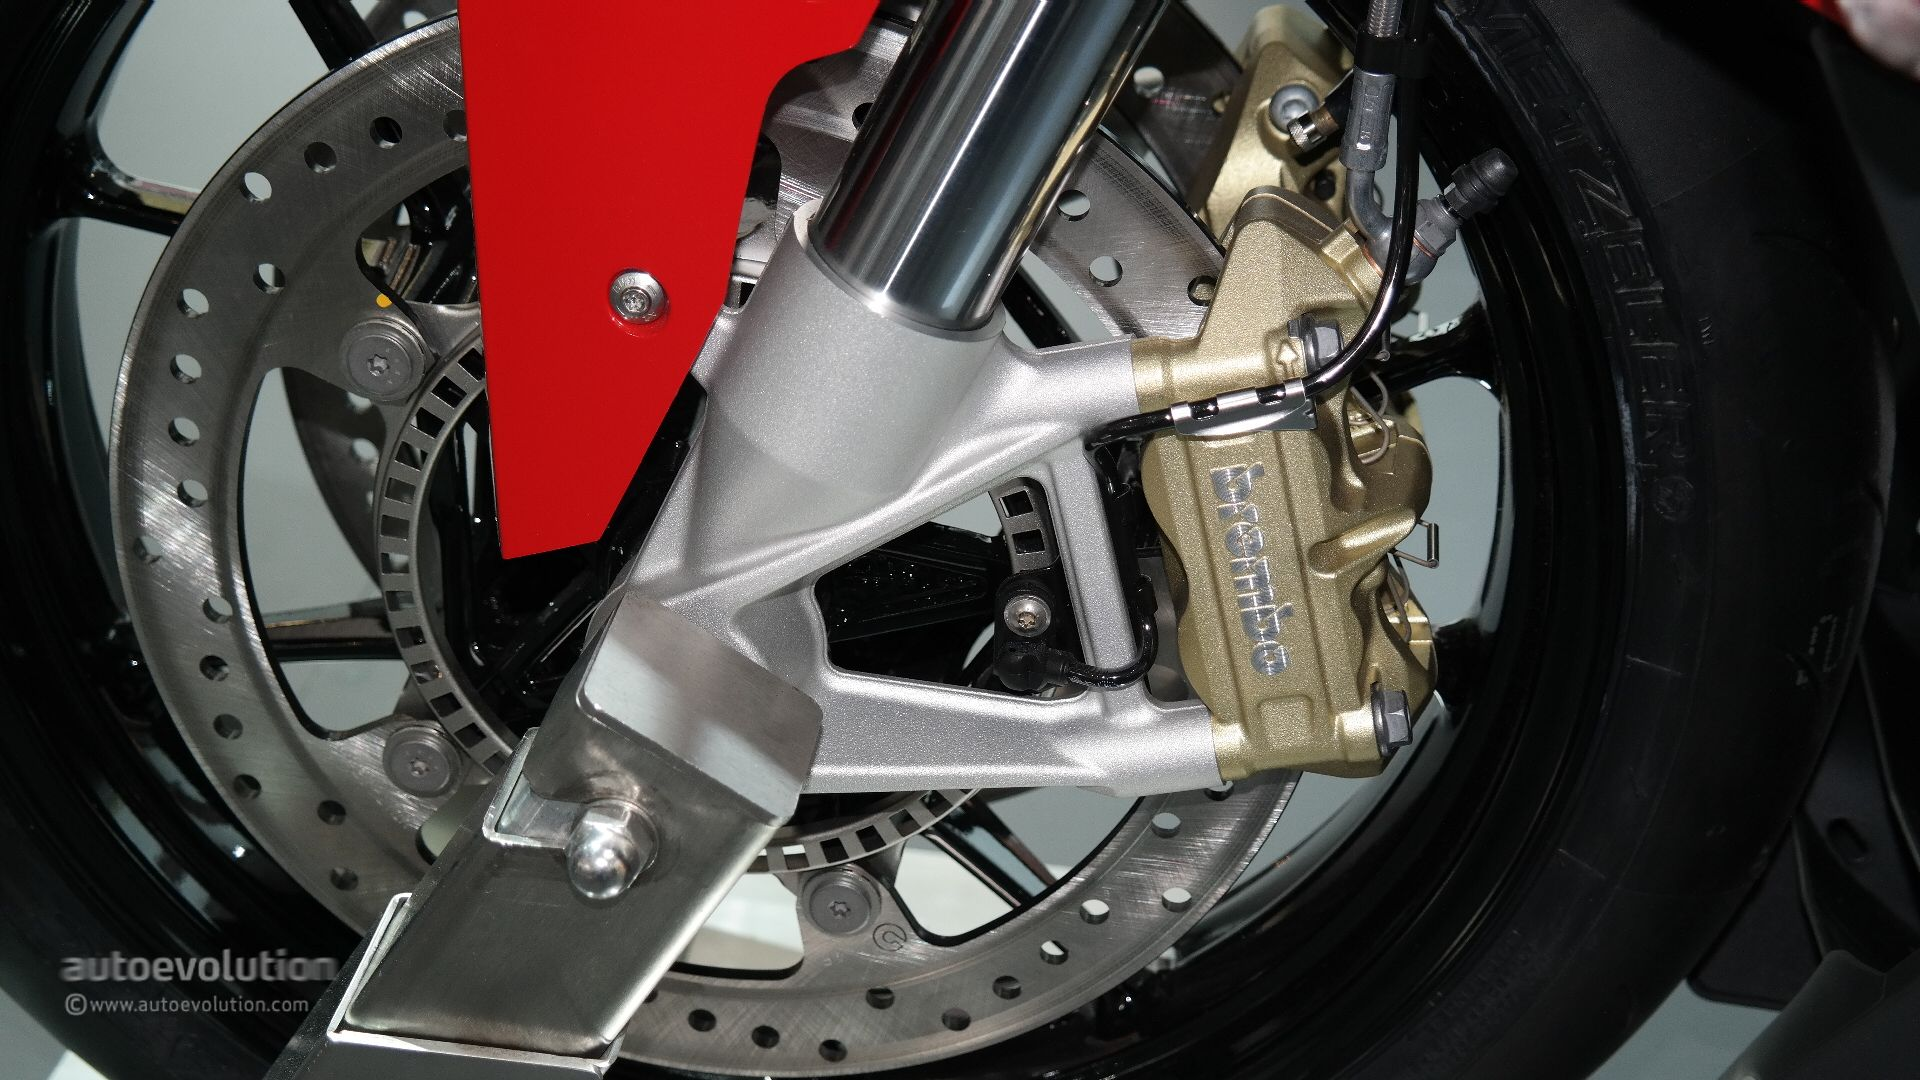 Ducati Panigale 1200cc >> 2015 BMW S1000RR Brings More Power and an Akrapovic Muffler at EICMA [Live Photos] - autoevolution